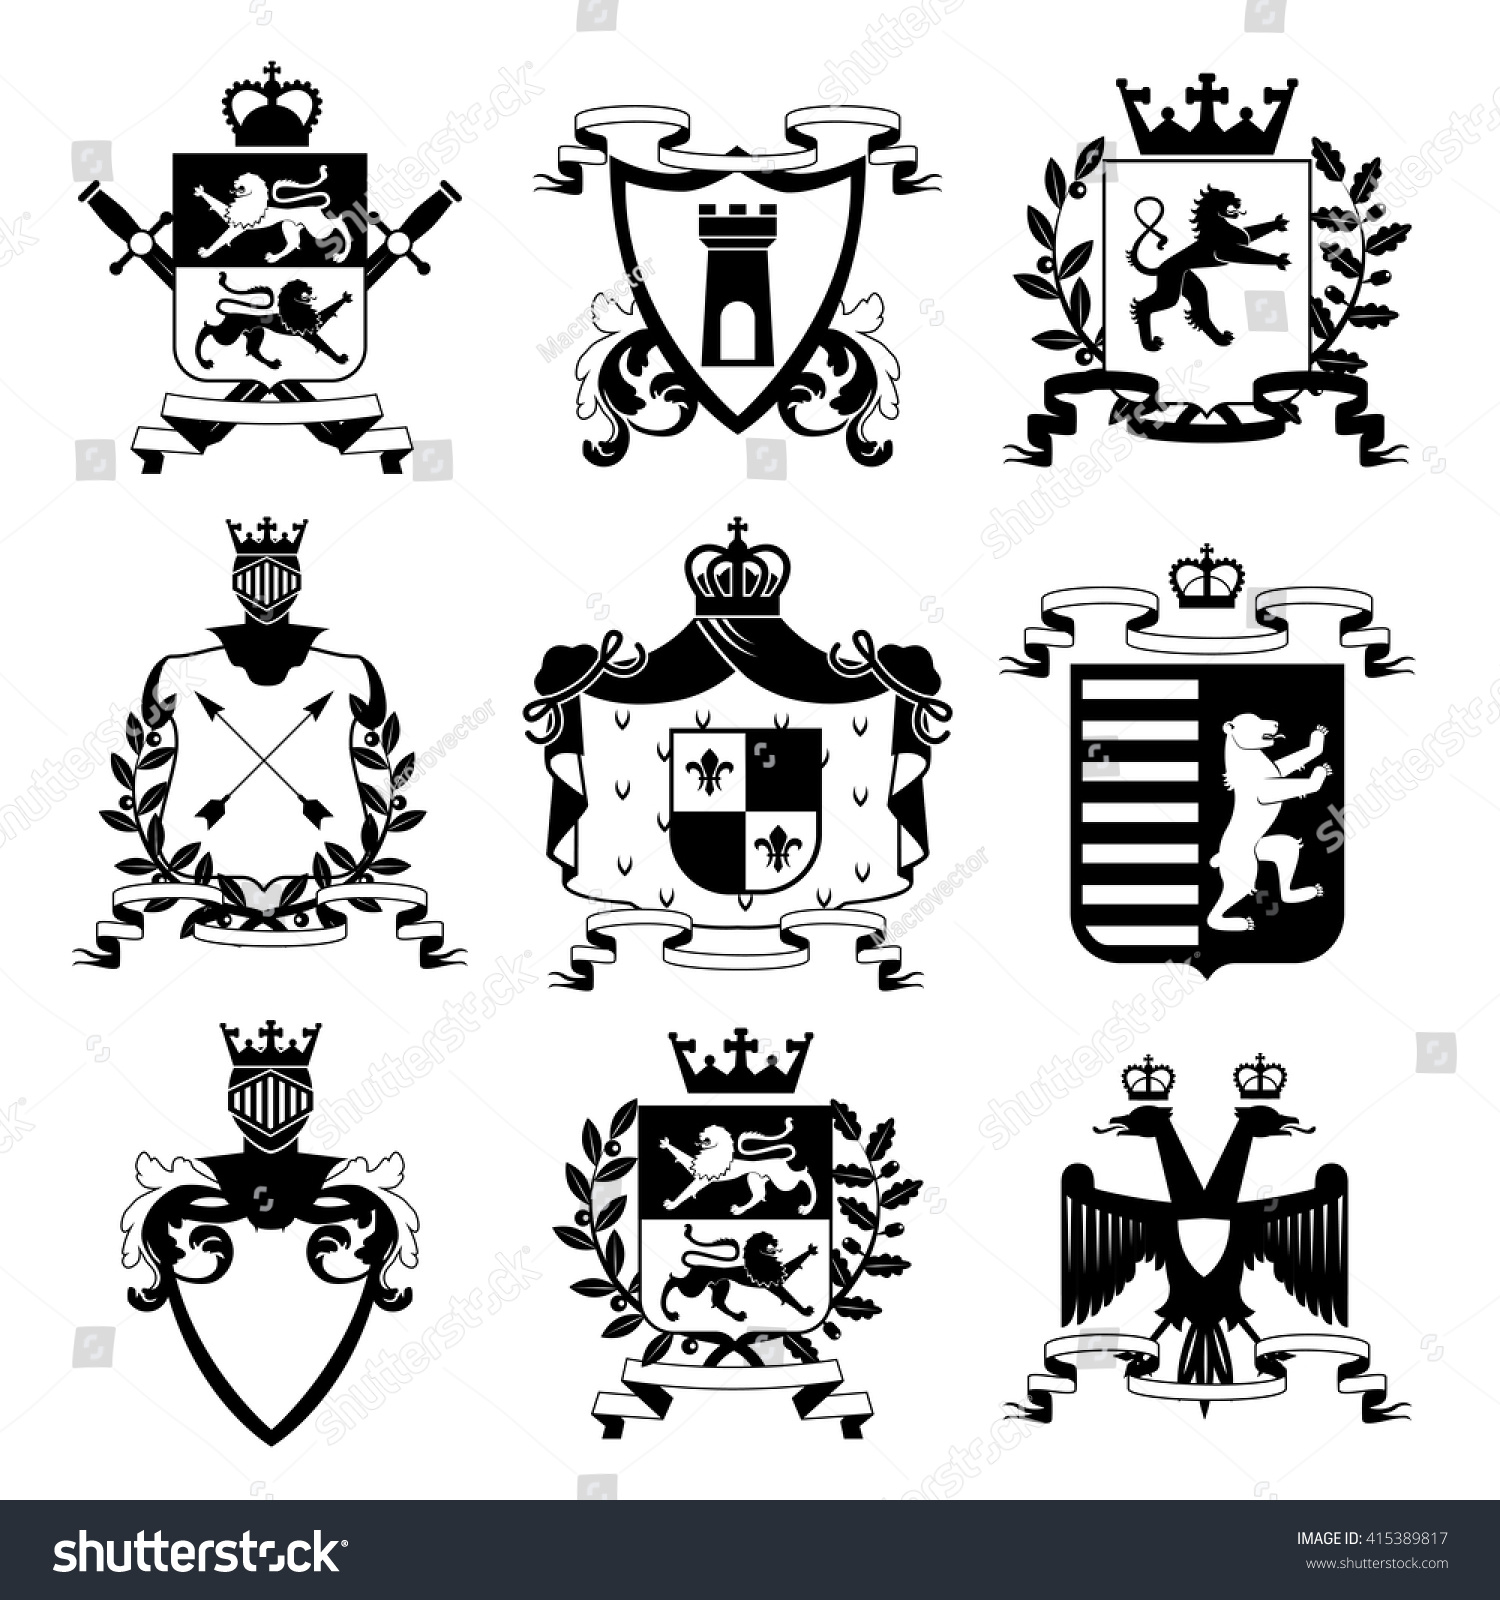 Heraldic coat arms family crest shields stock vector 415389817 heraldic coat of arms family crest and shields emblems design black icons collection abstract isolated vector buycottarizona